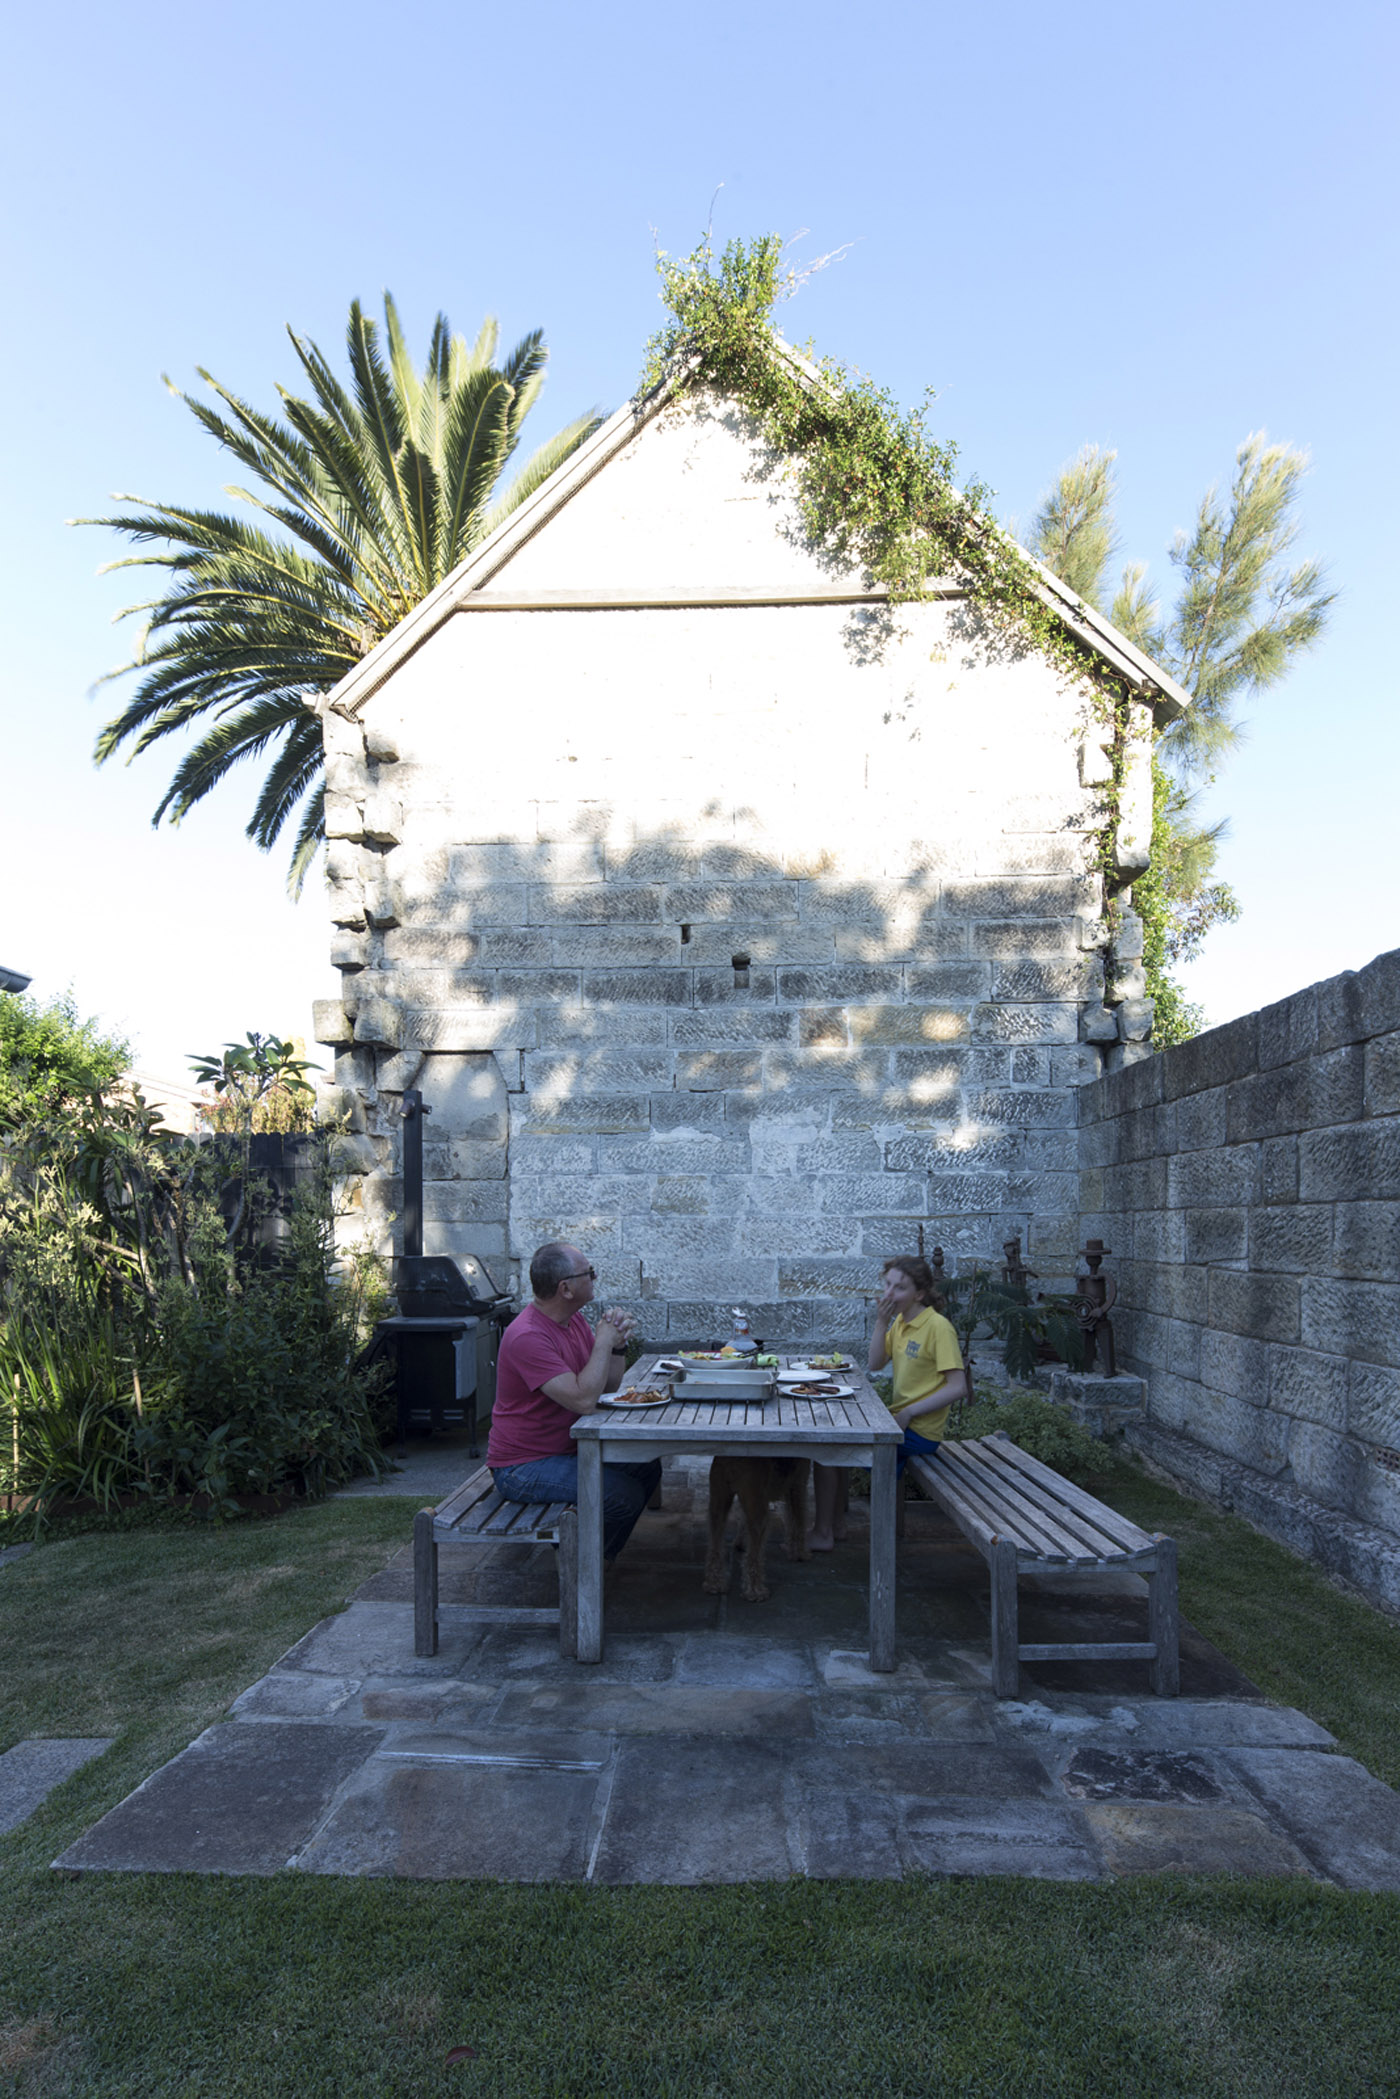 Salgo Kitching House by Sydney award winning architecture office Sam Crawford Architects. Dad and son enjoying outdoor lunch surrounded by heritage stone wall